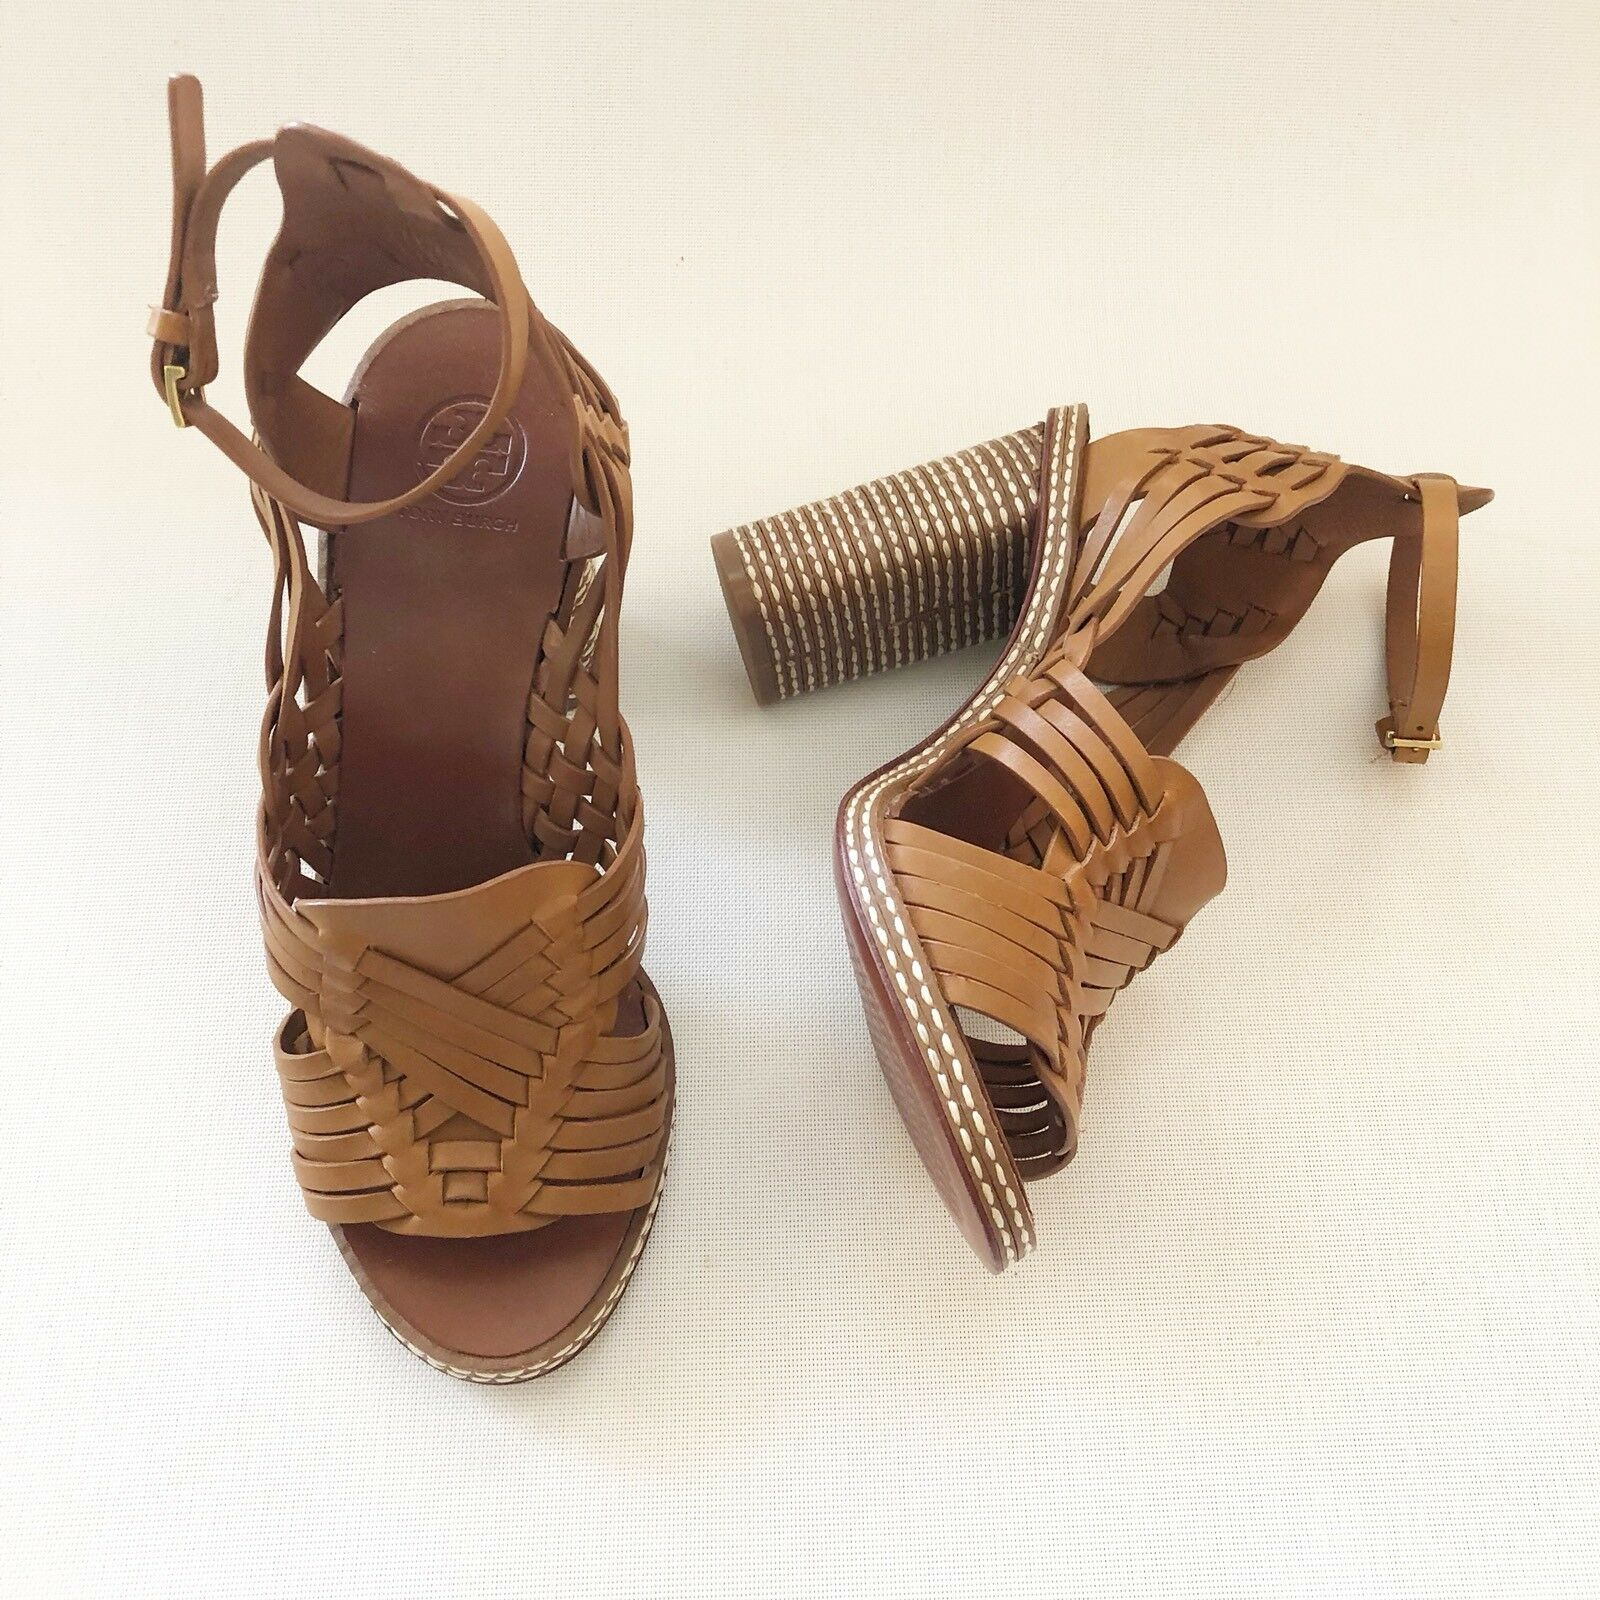 Donna's Tory Leather Burch Pecha High Heel Leather Tory Sandals Size 8 NEW! 677f8e